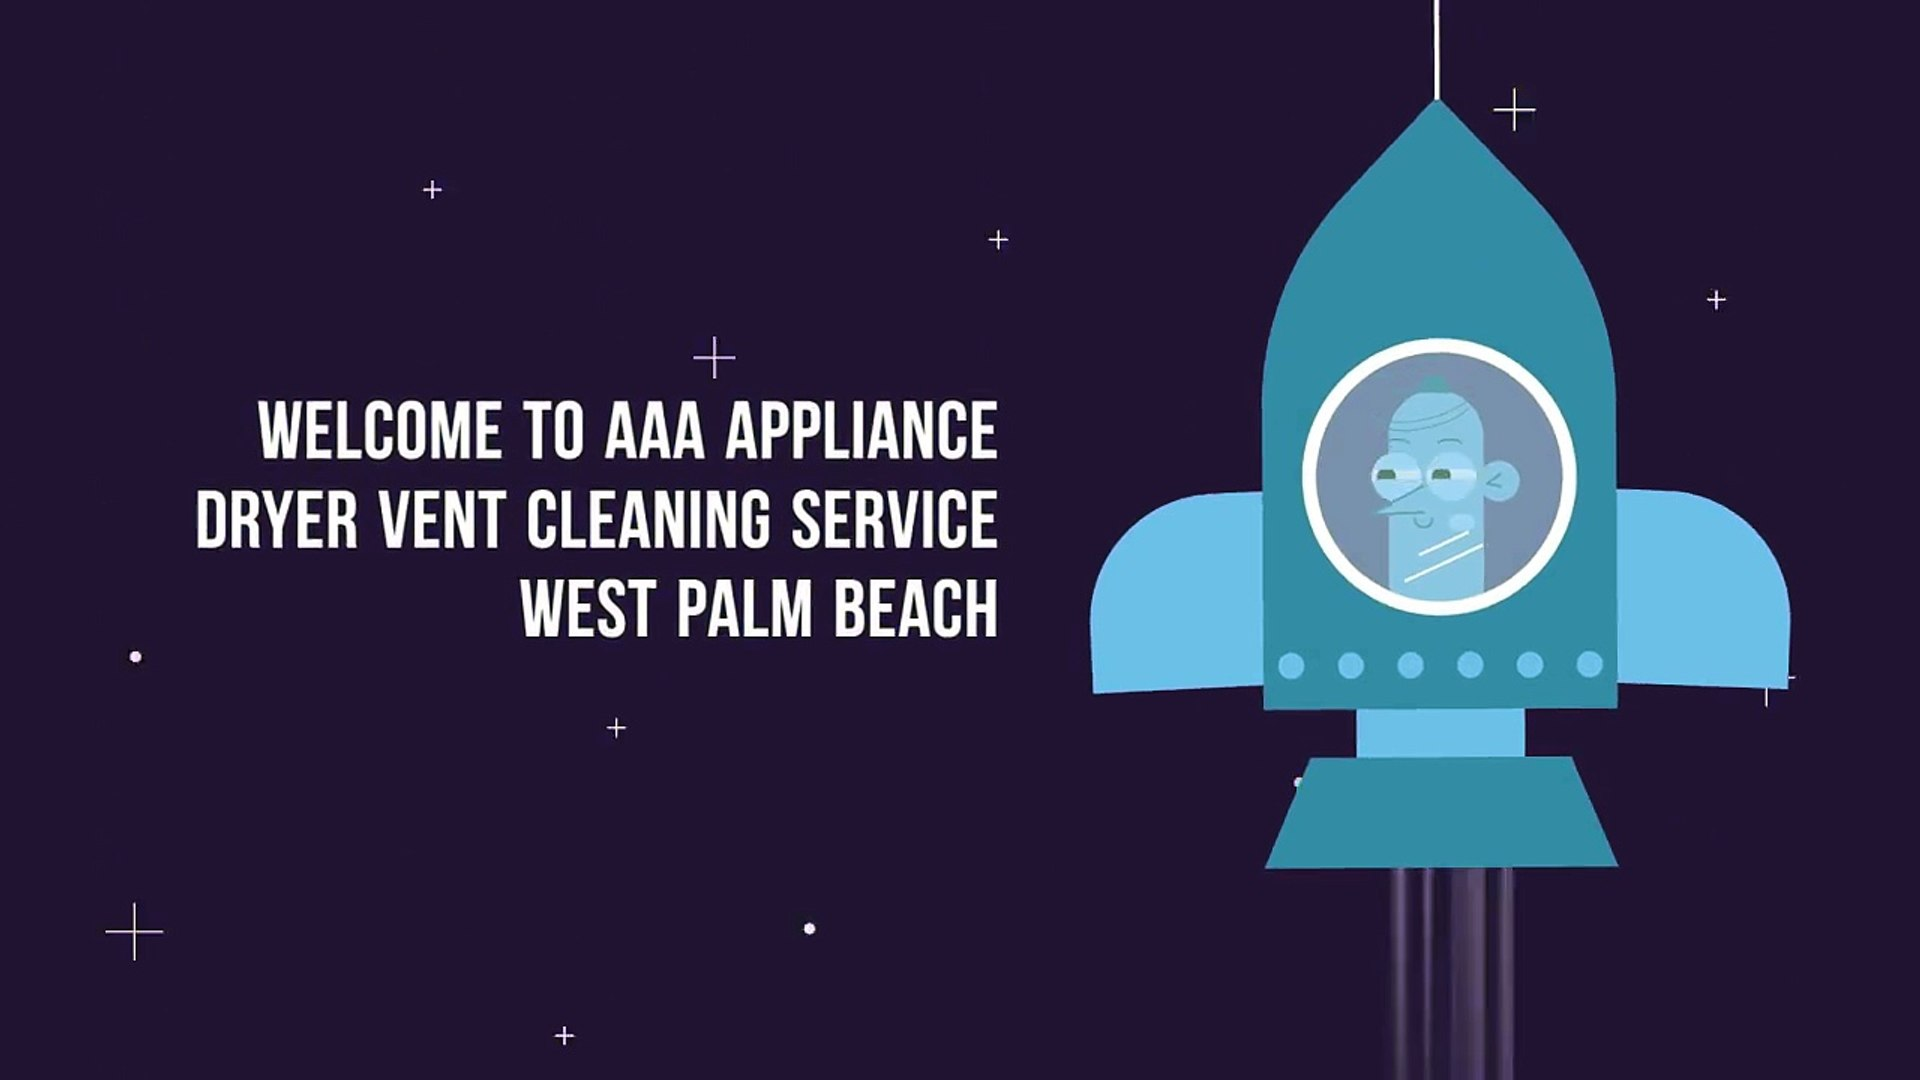 AAA Appliance Clothes Dryer Vent Cleaning Service in West Palm Beach, FL